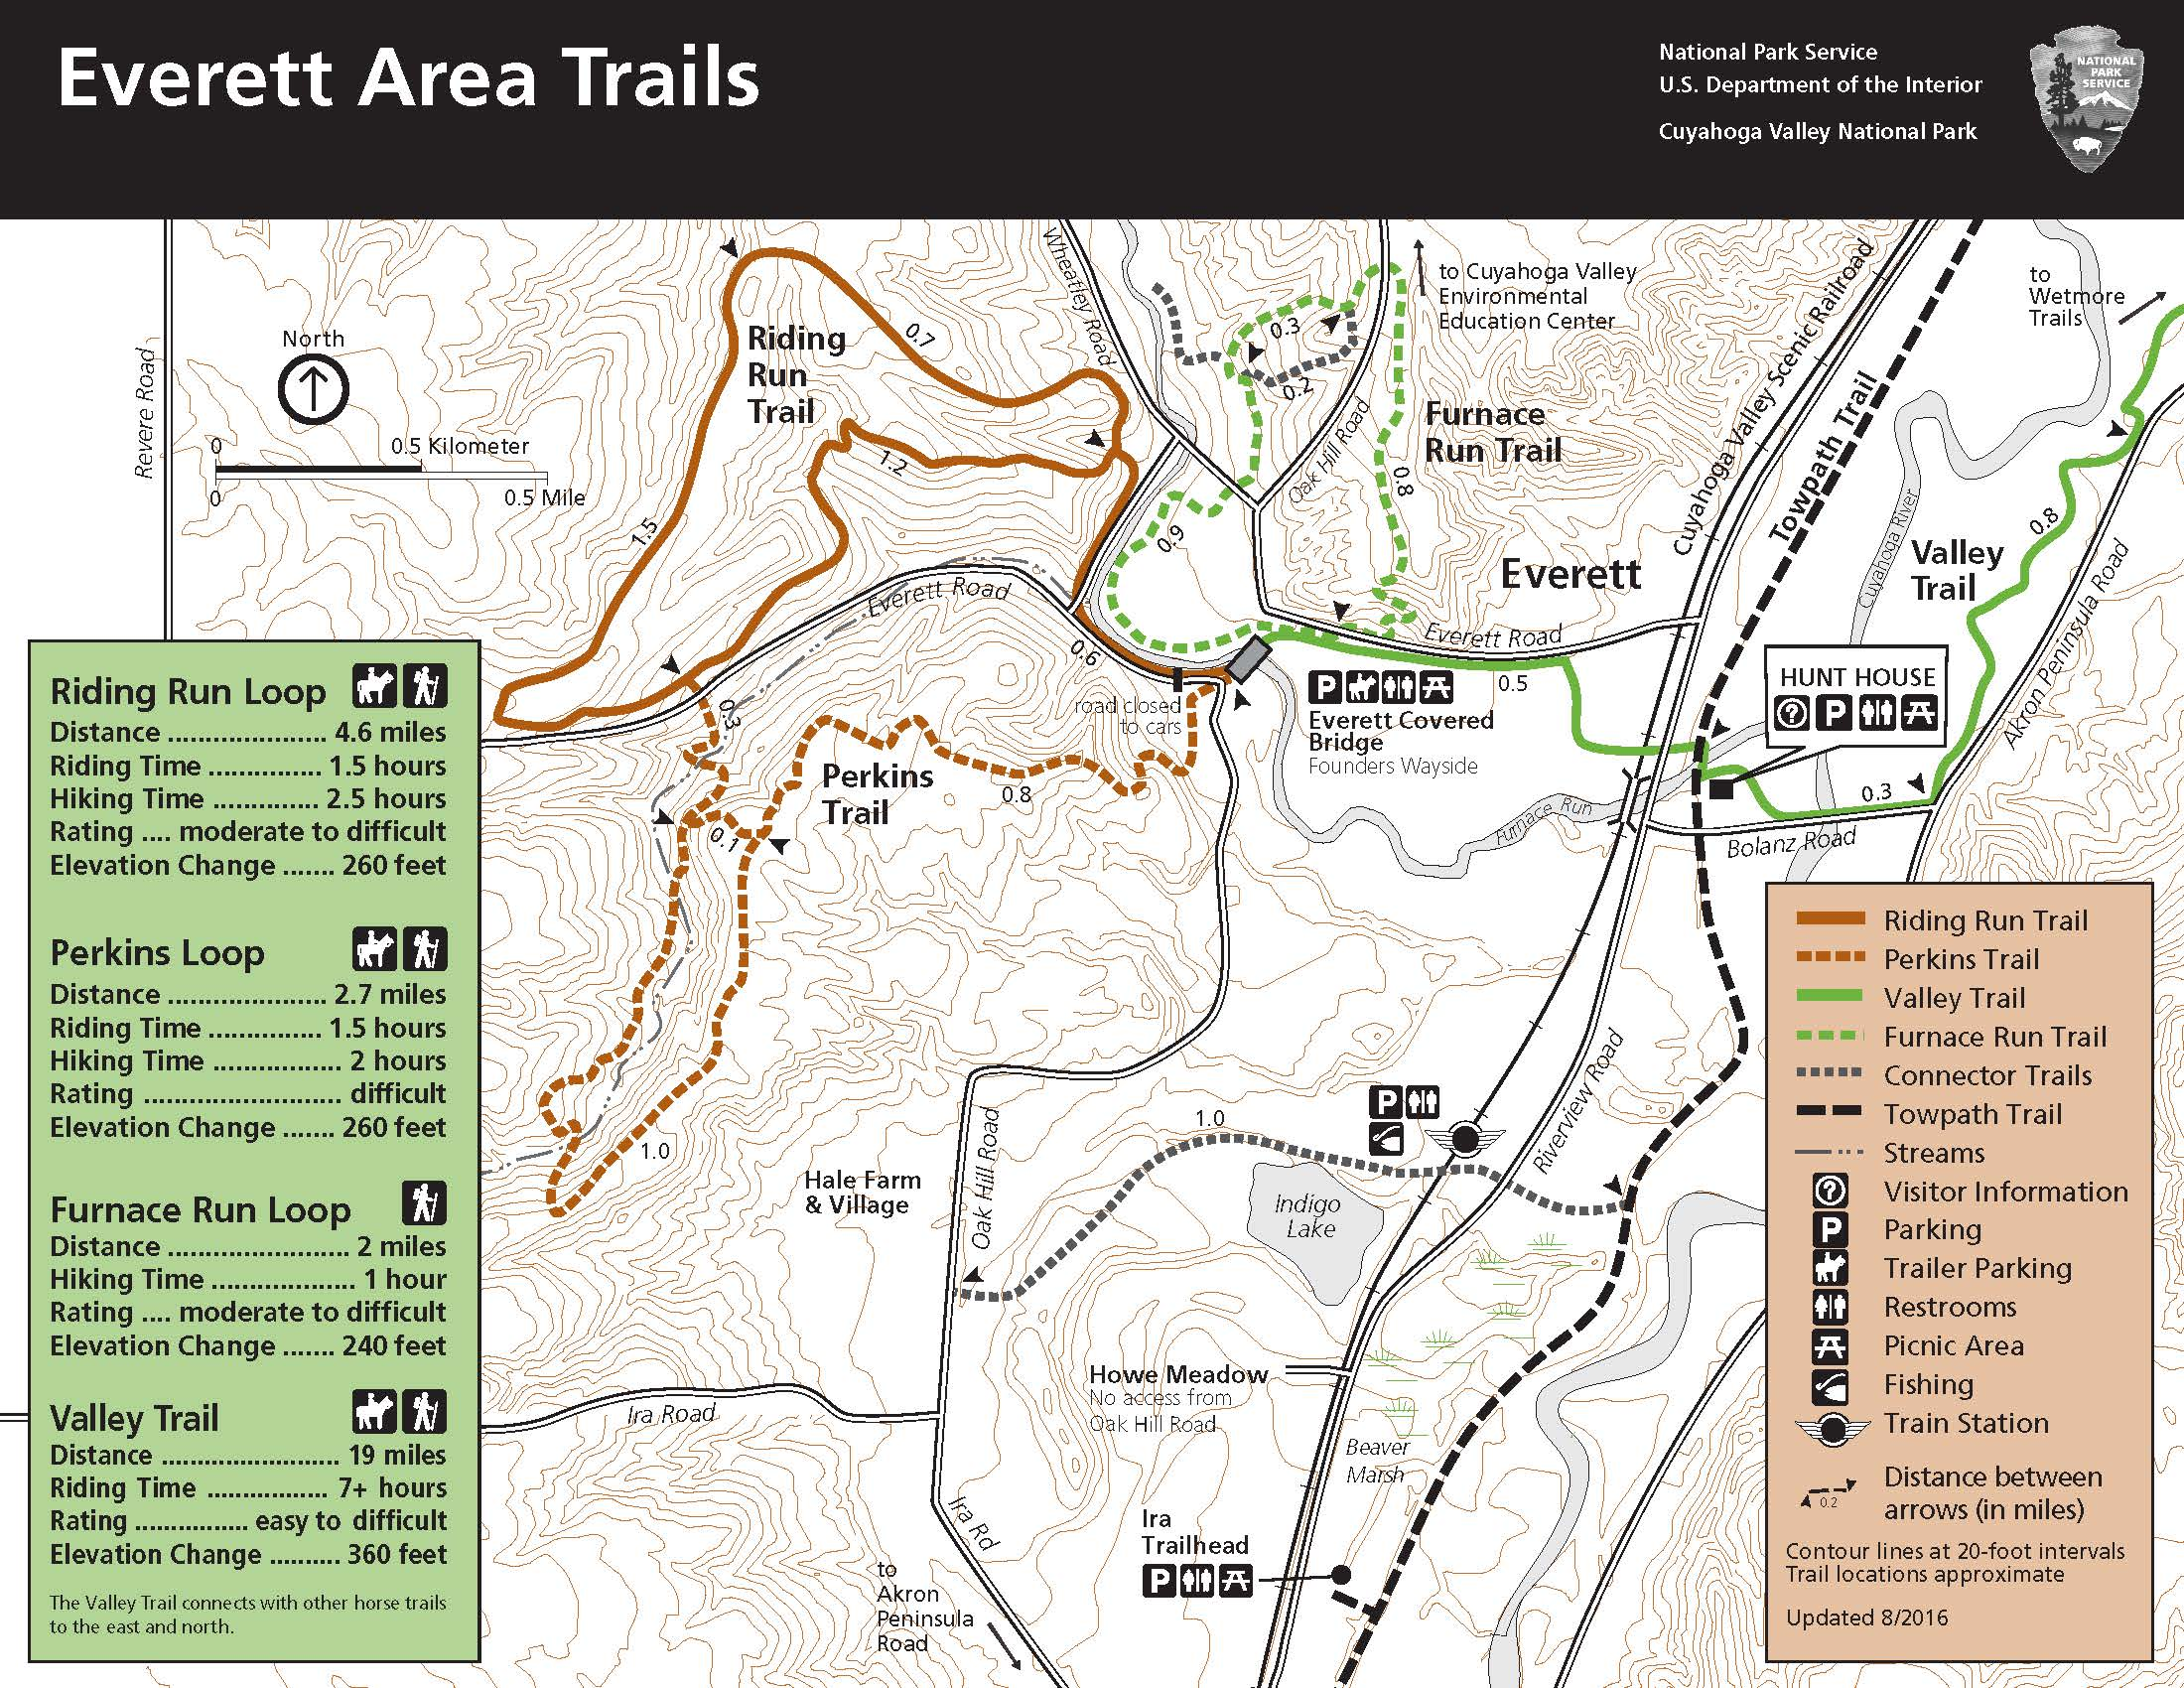 Map Of The Everett Area Trails. - Map of the Everett area trails.